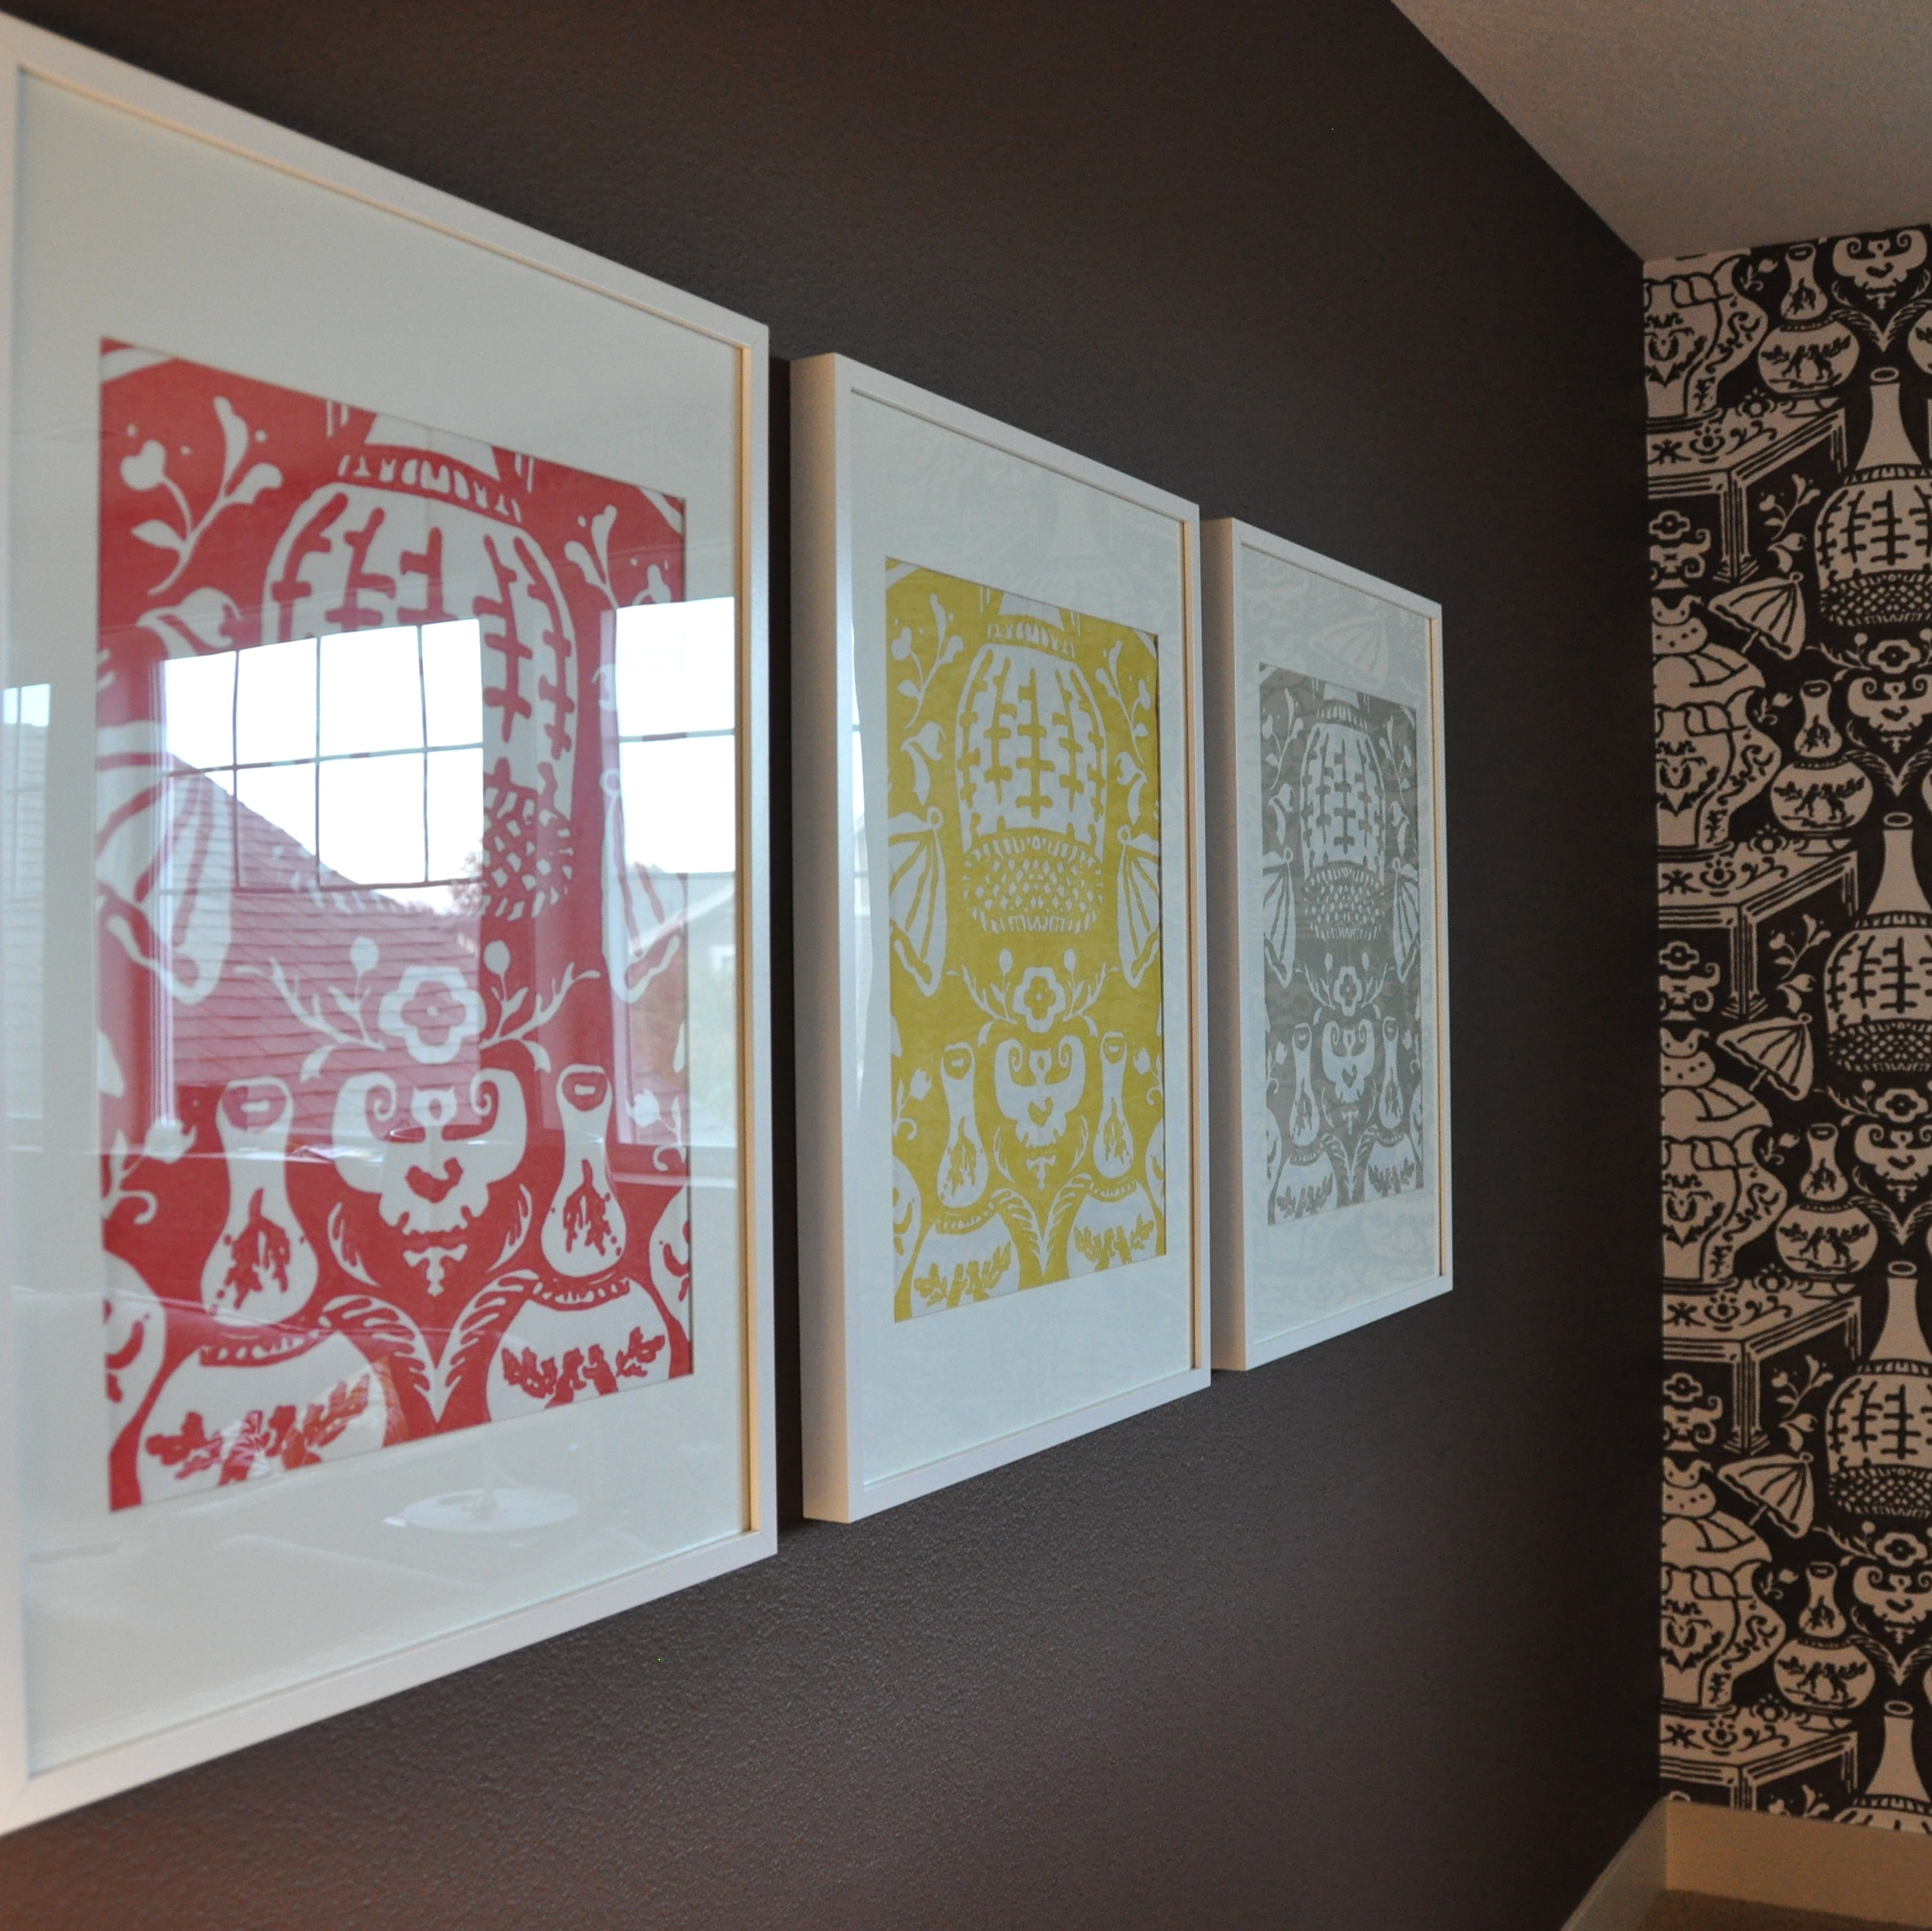 Wallpaper Samples In Ikea Ribba Frames = Simple & Fun Art! | Great Regarding Most Recent Ikea Fabric Wall Art (View 2 of 15)